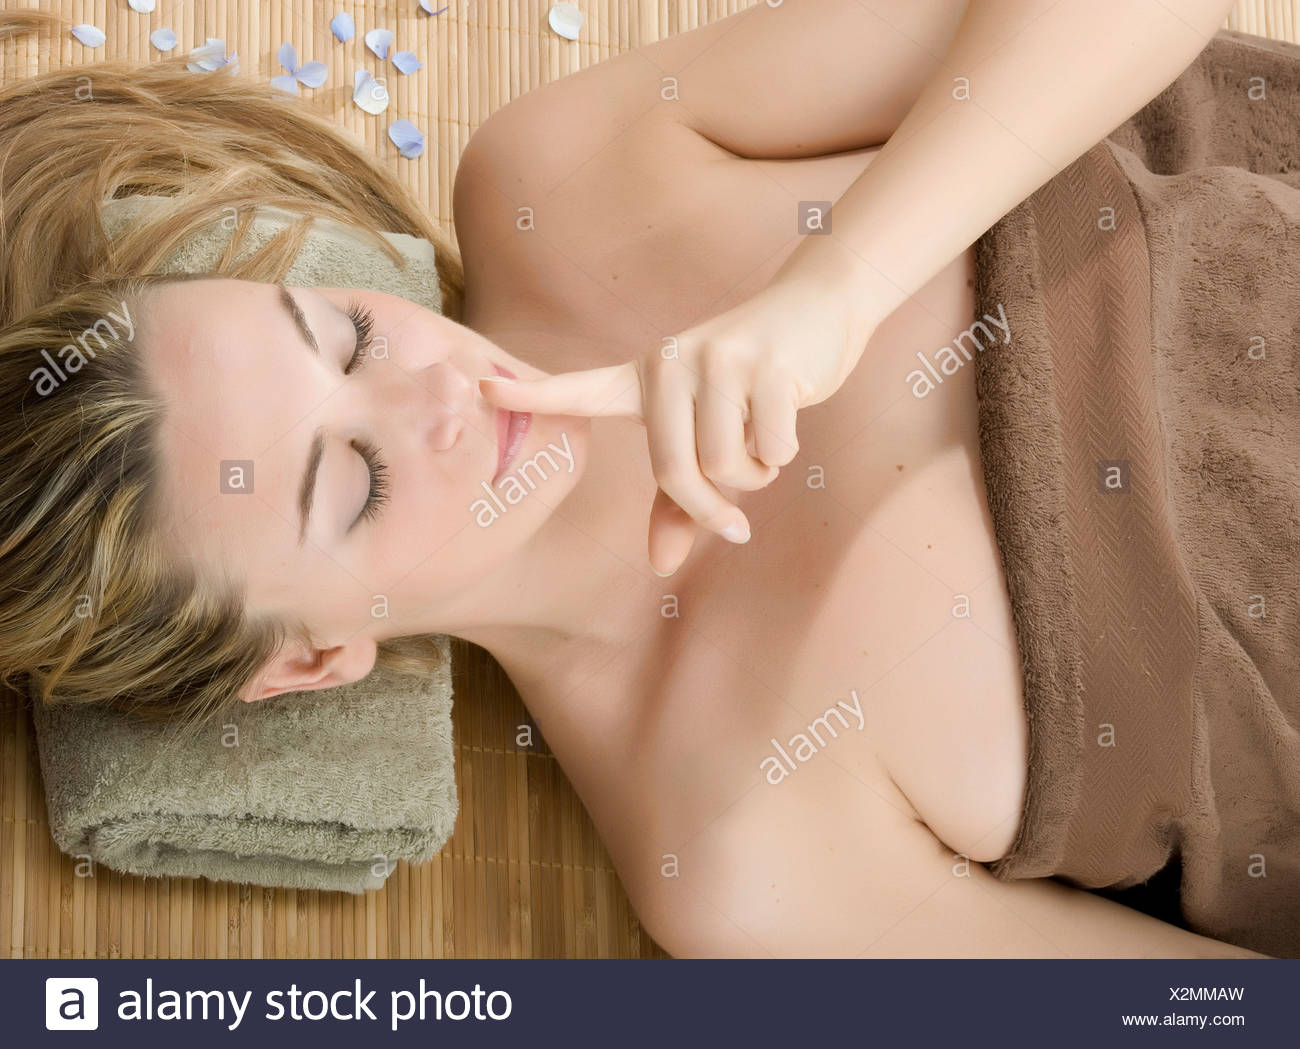 Woman at spa with finger on lips - Stock Image